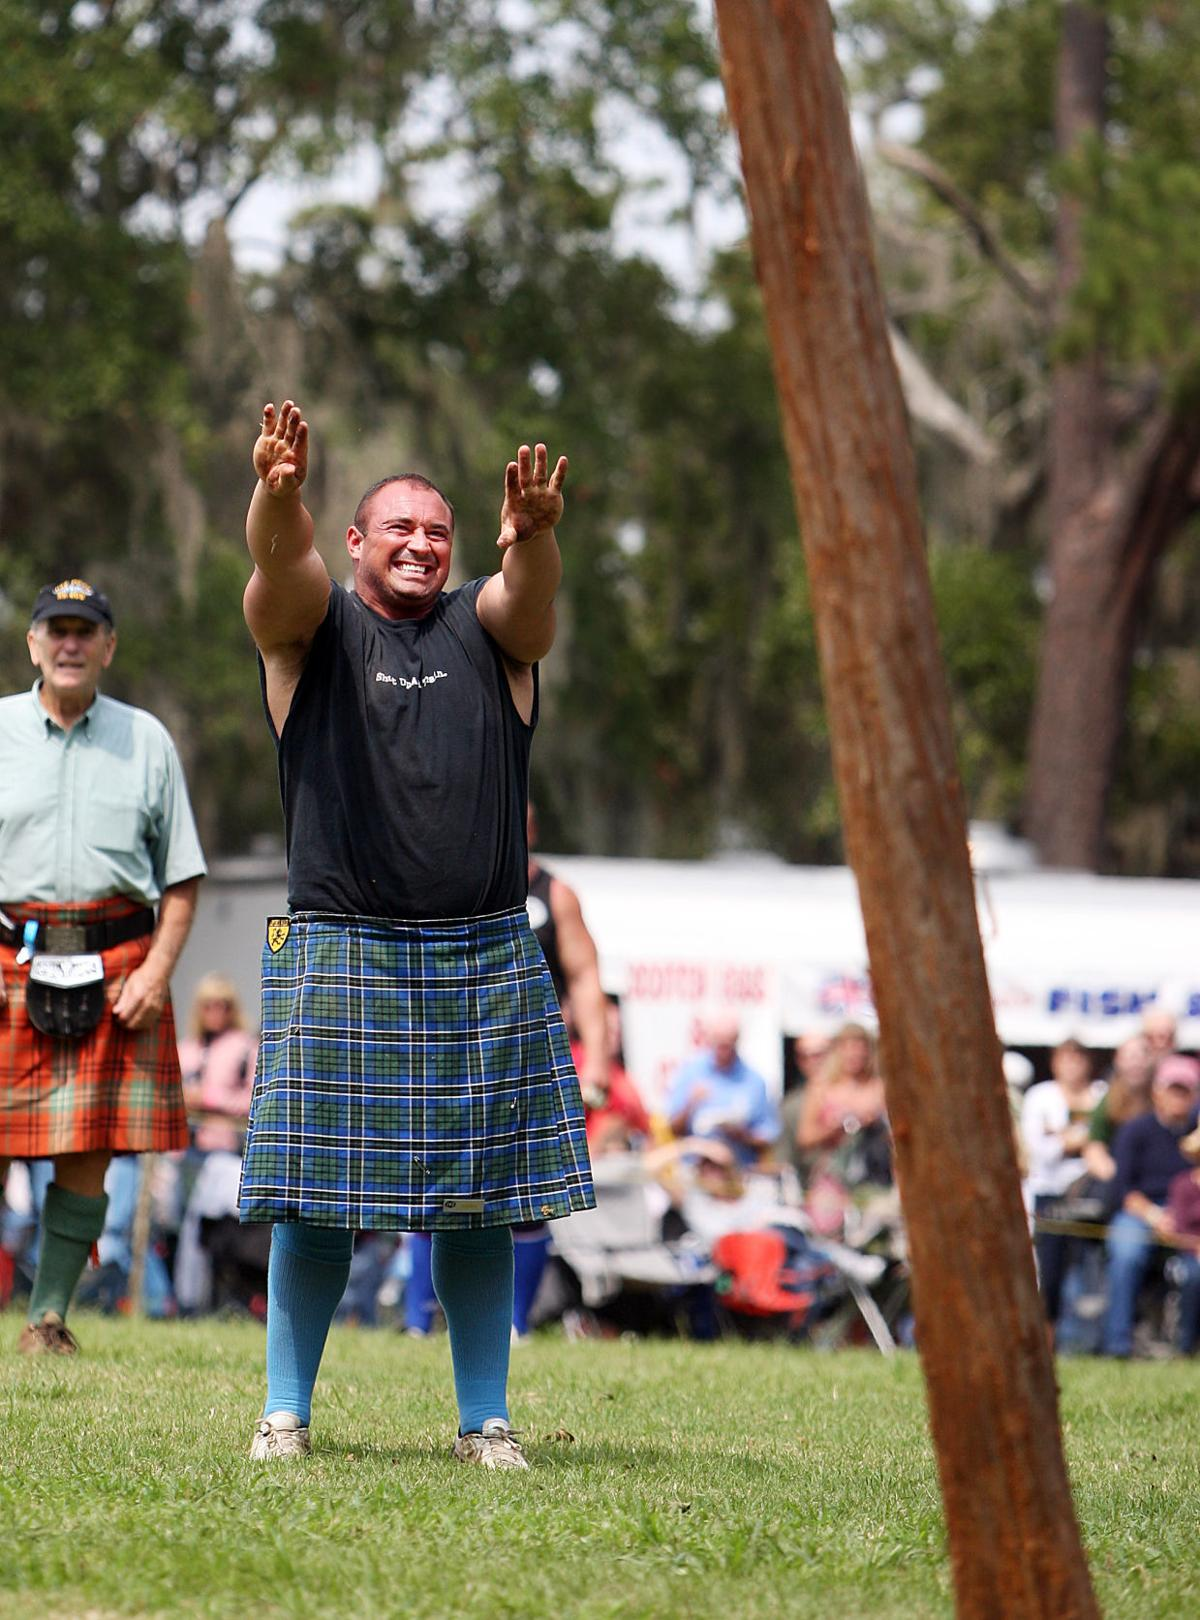 Trivia goes to the Scots 'Scotland for the Day' Scottish Games and Highland Gathering grows, evolves entering 42nd year